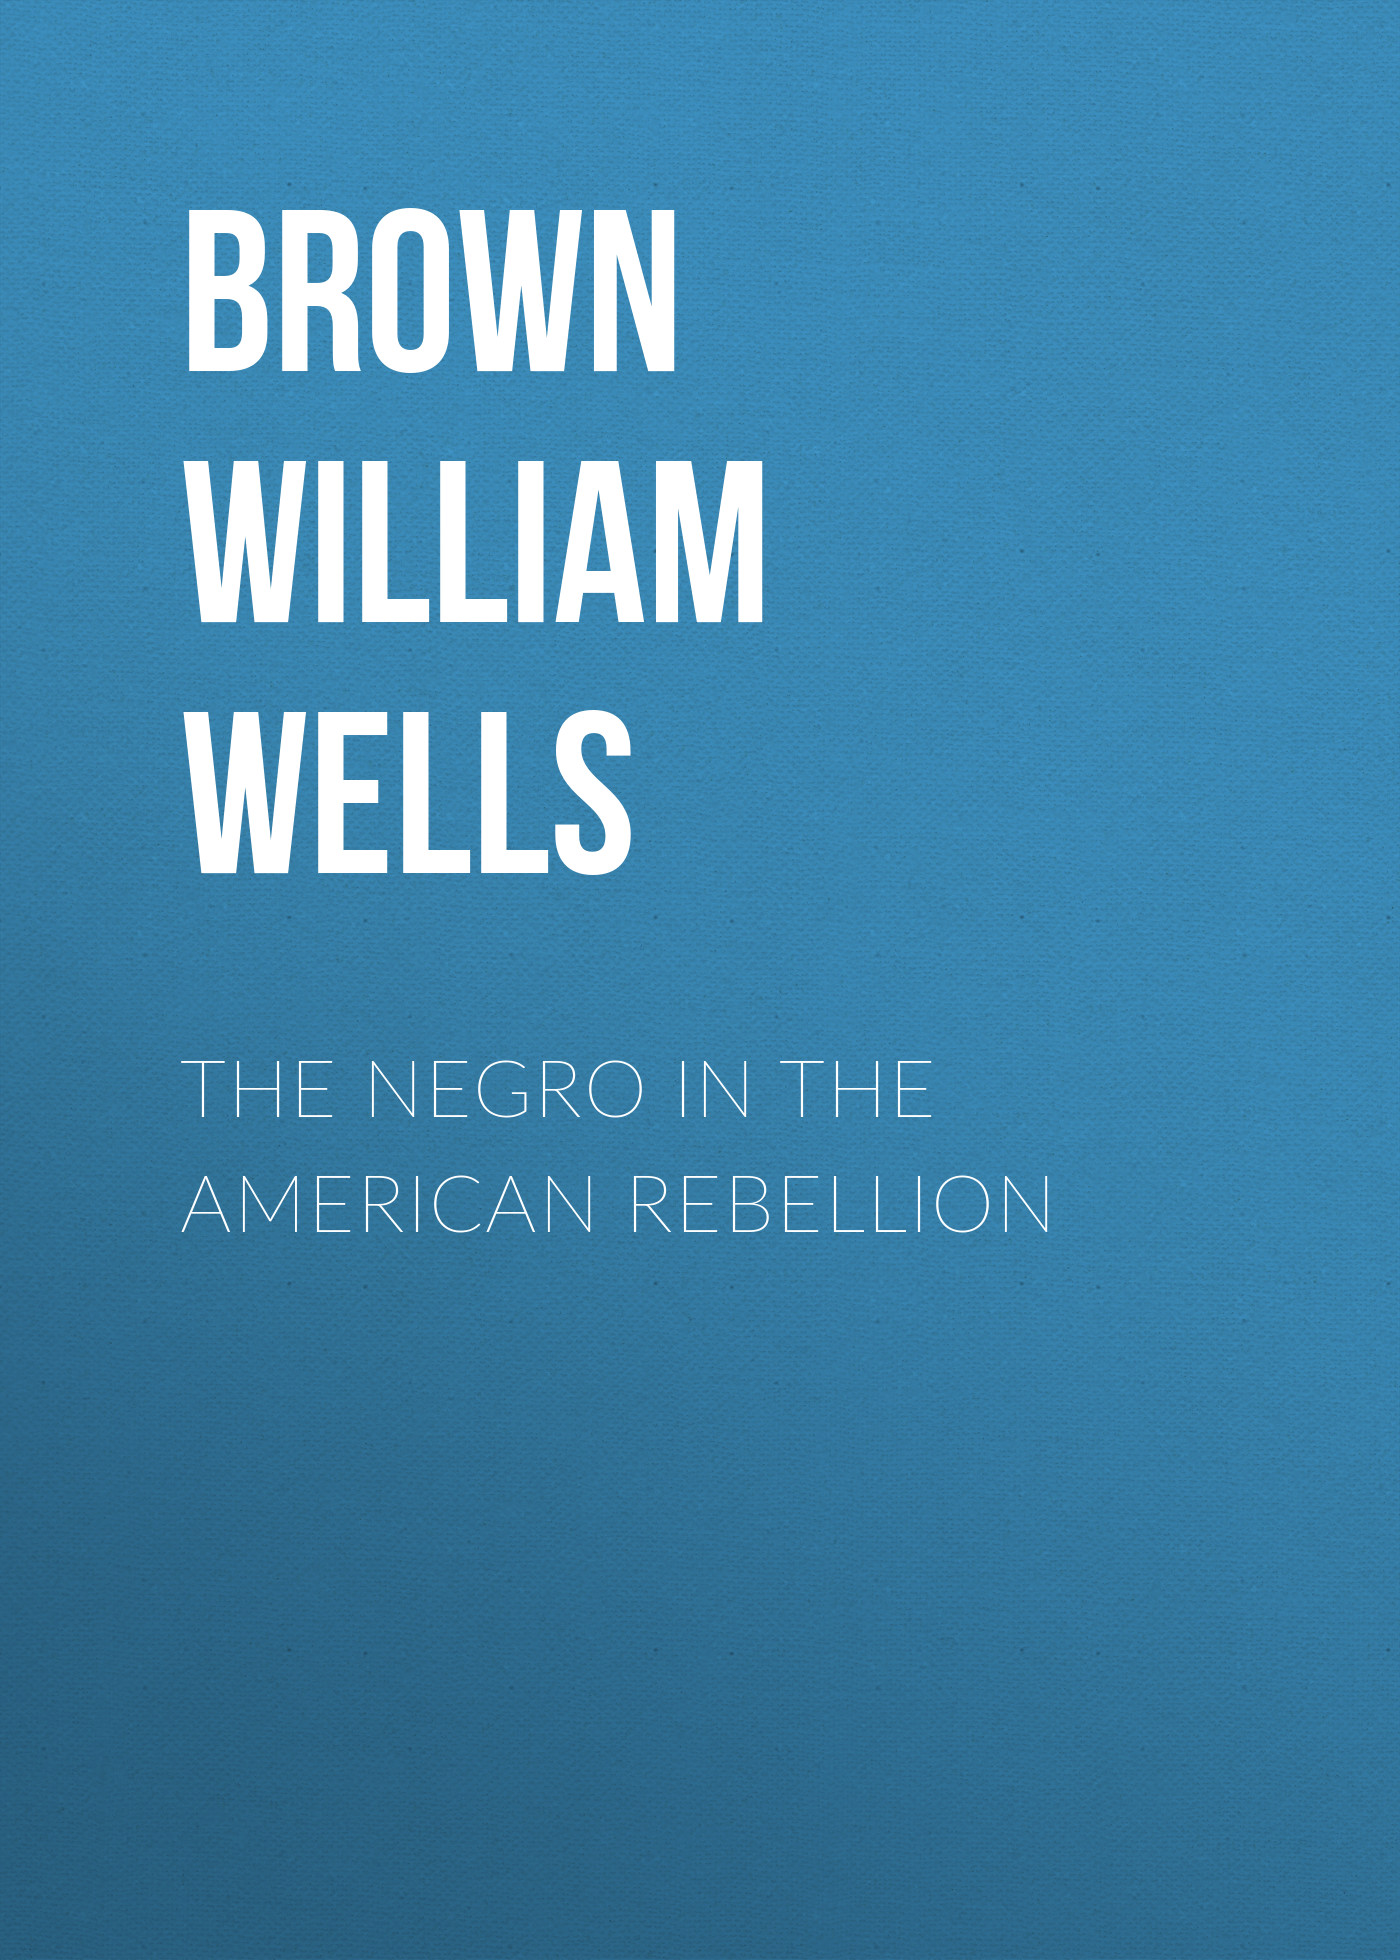 Brown William Wells The Negro in The American Rebellion brown william wells illustrated edition of the life and escape of wm wells brown from american slavery